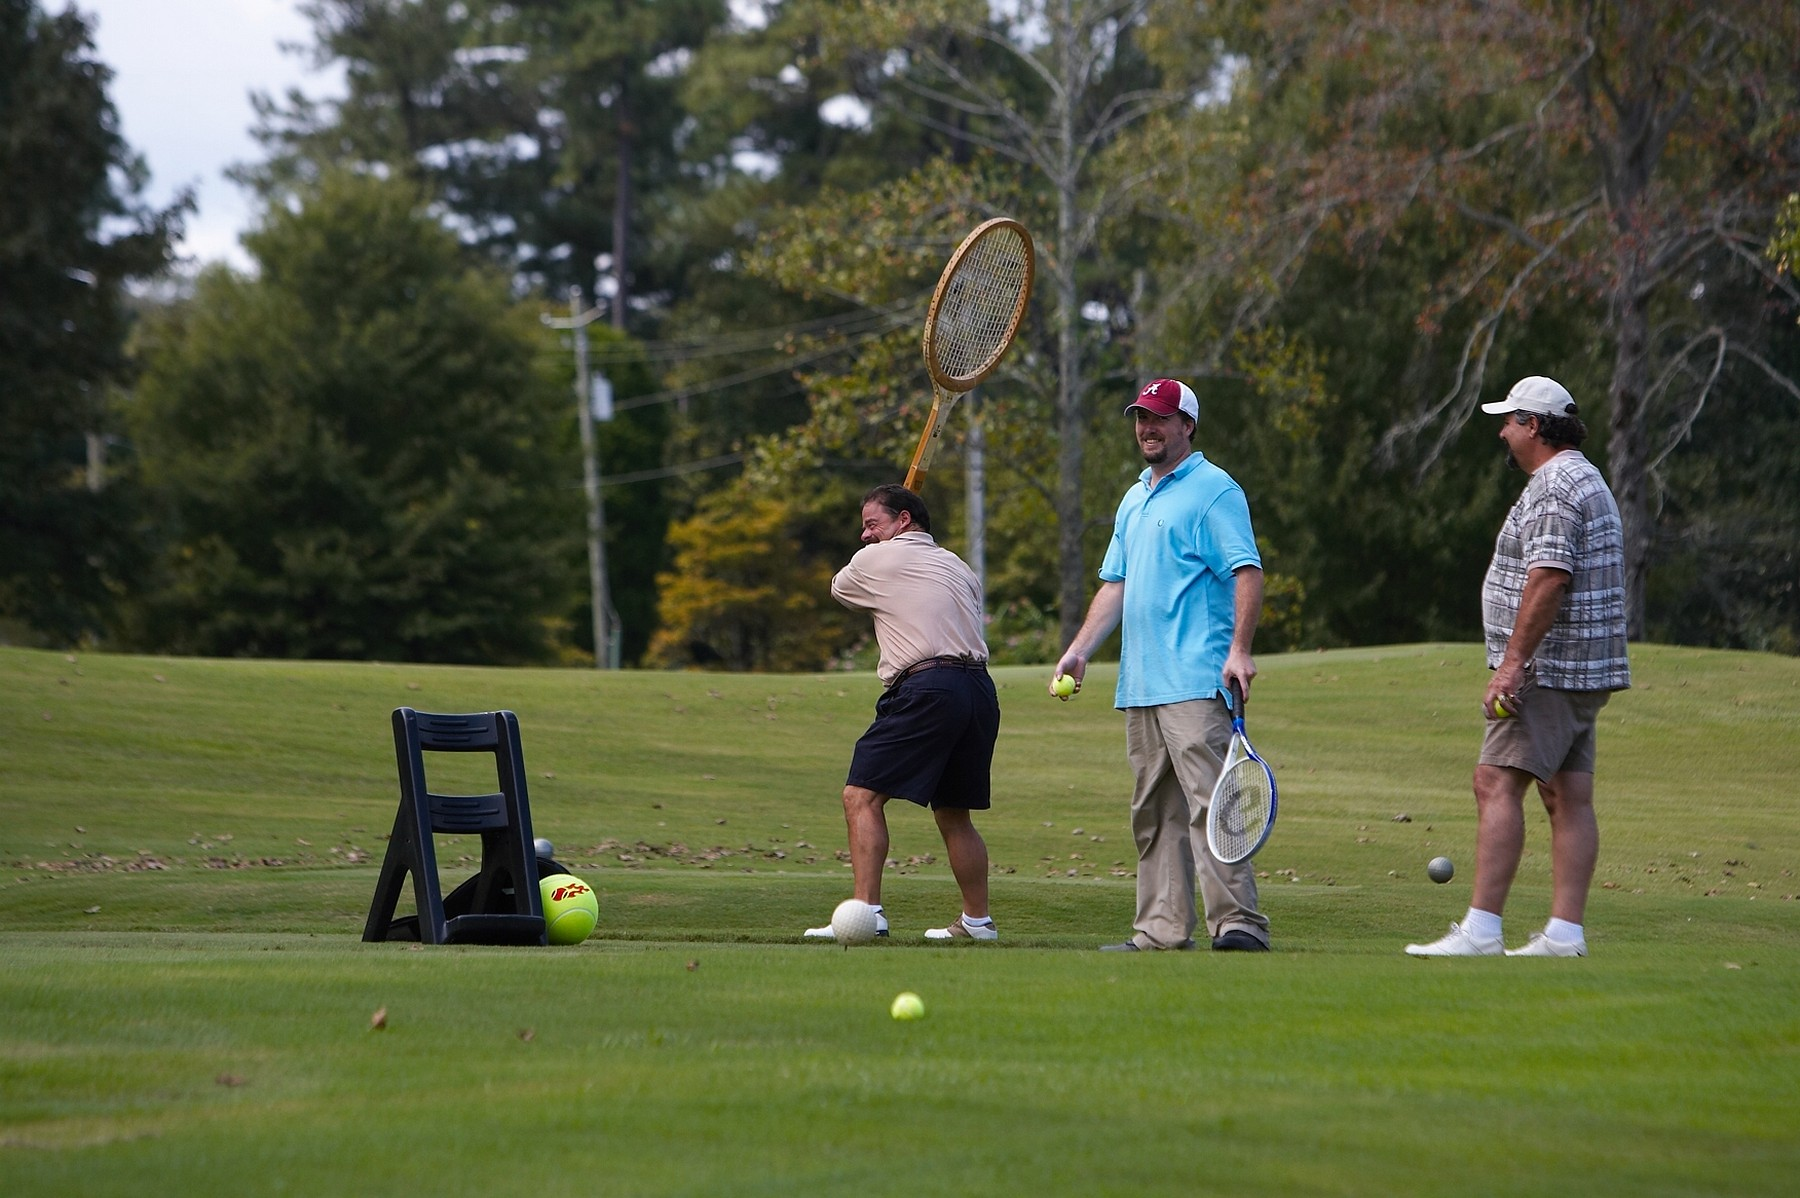 Tennis on a golf course.jpg